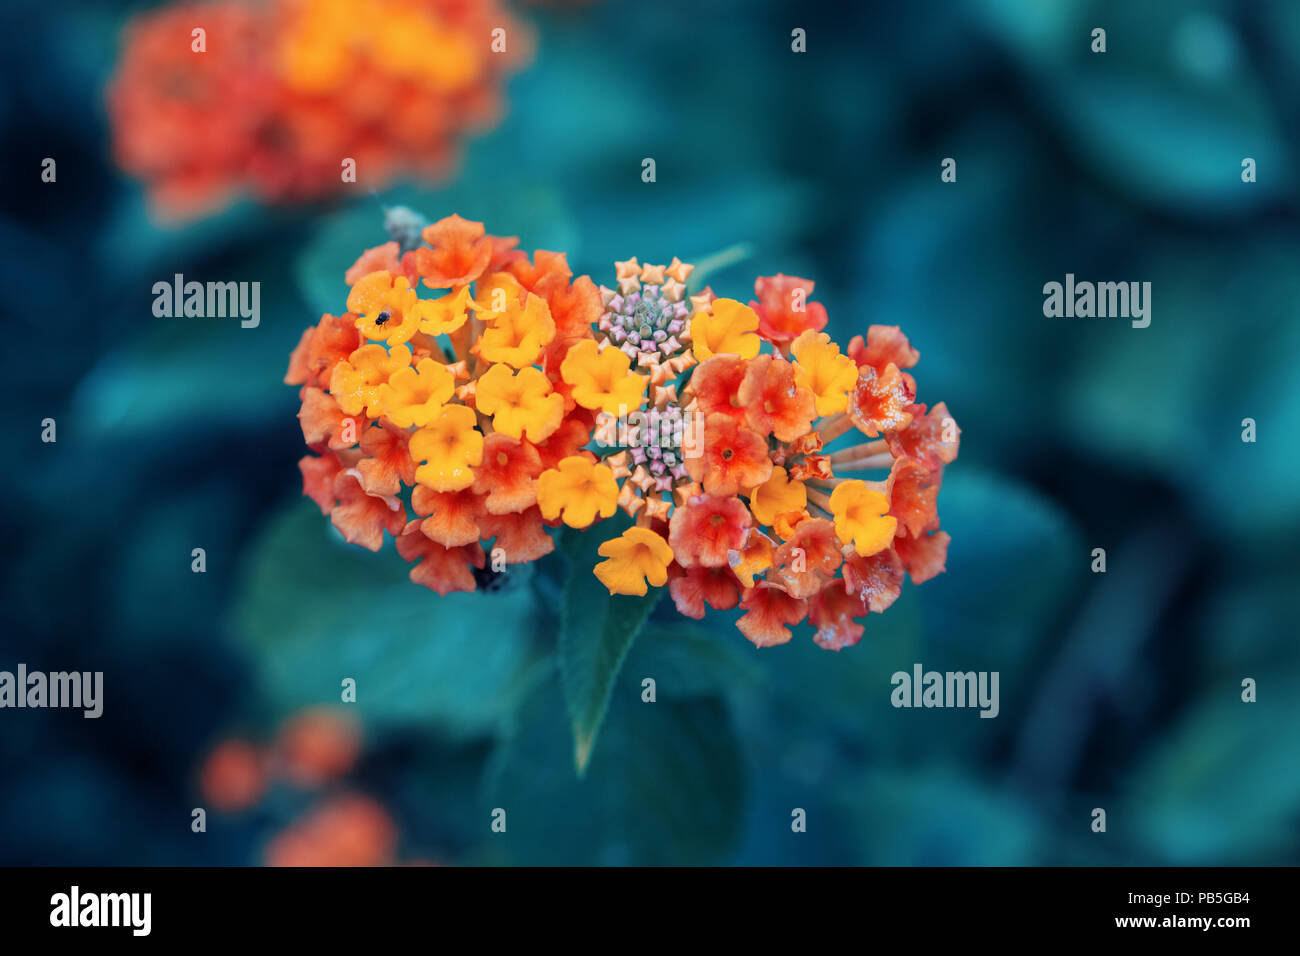 Beautiful fairy dreamy magic red yellow orange flower lantana camara on green blue blurry background, toned with instagram filters in retro vintage st Stock Photo